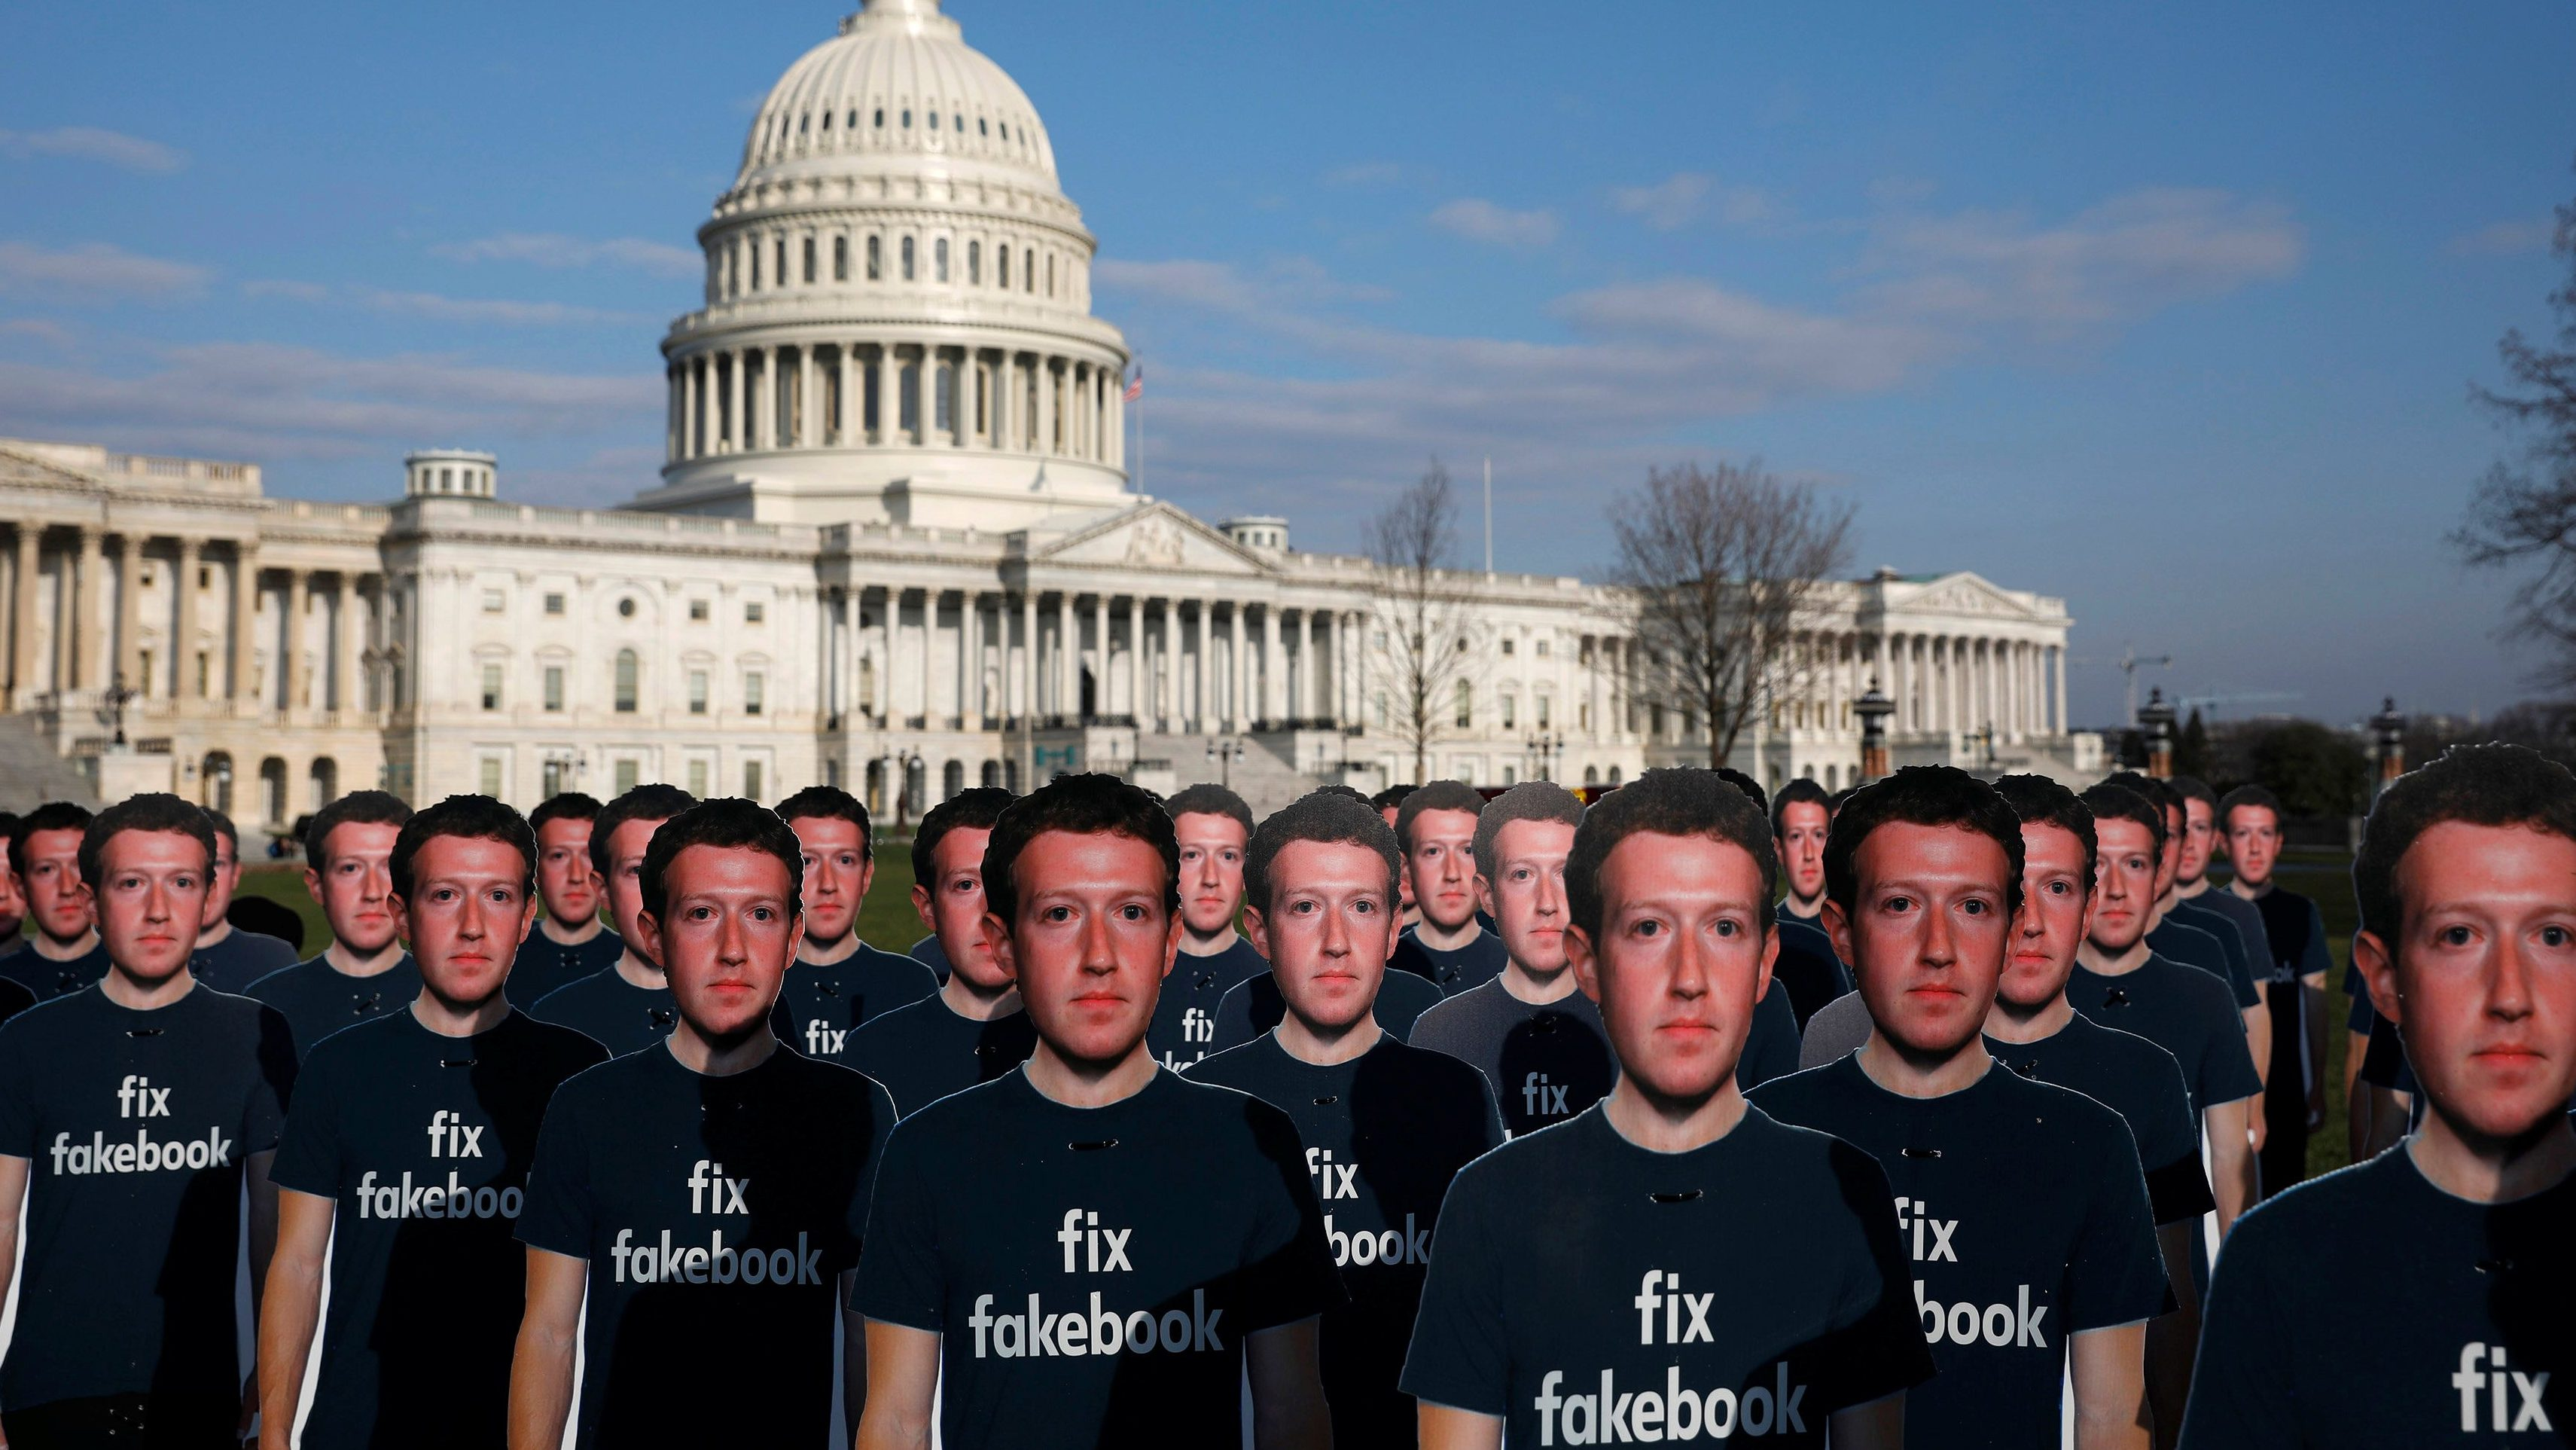 Dozens of cardboard cutouts of Facebook CEO Mark Zuckerberg are seen during an Avaaz.org protest outside the U.S. Capitol in Washington, U.S., April 10, 2018. REUTERS/Aaron P. Bernstein - RC140BEB31A0